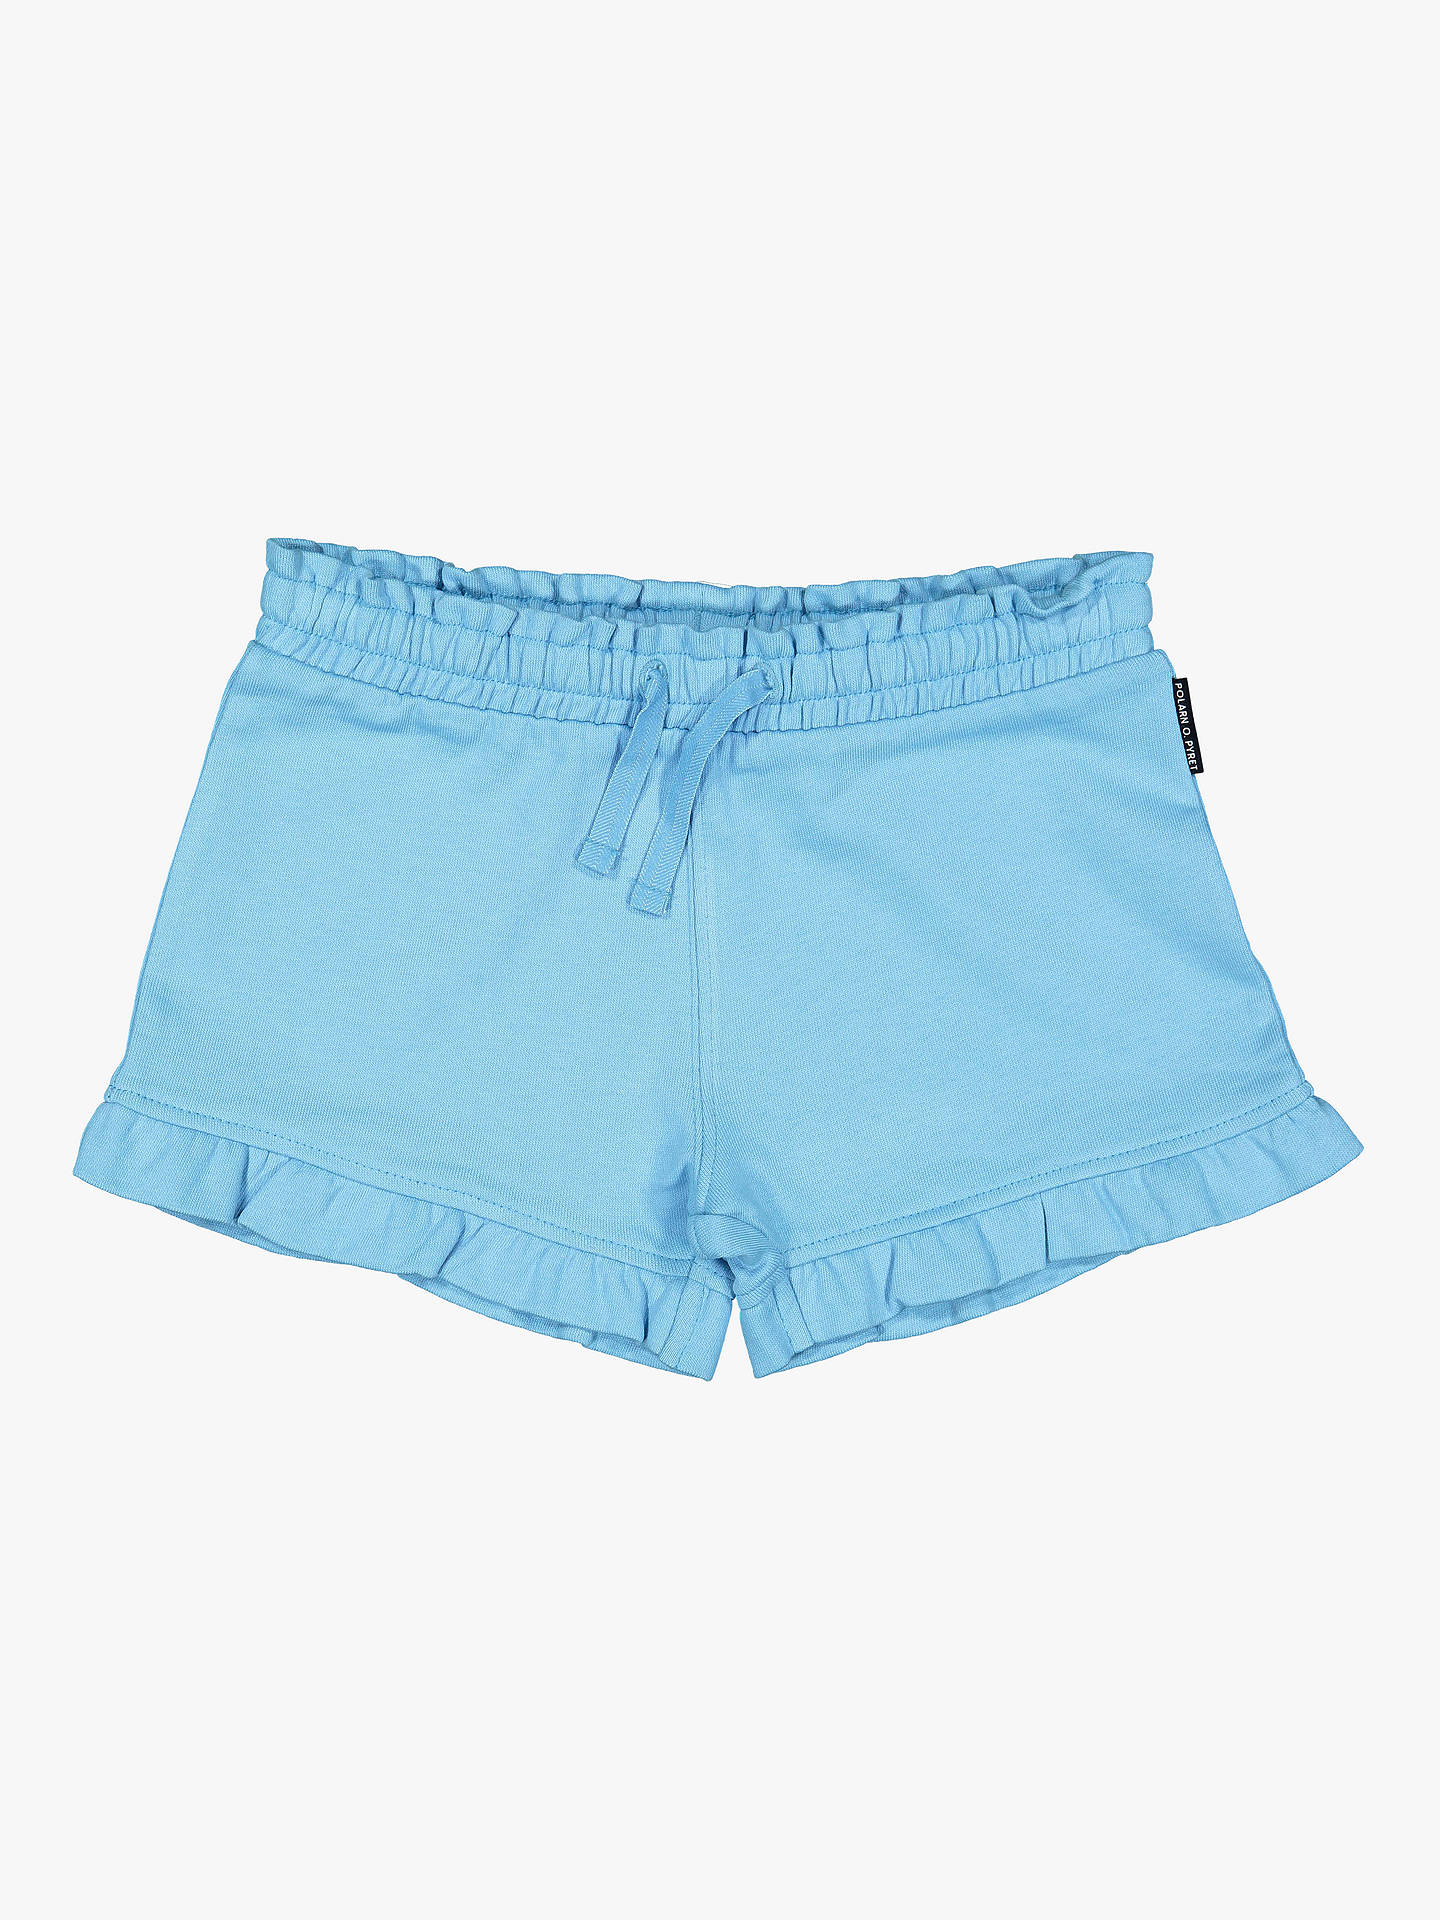 a6f45ee12e00 Buy Polarn O. Pyret Children's Frill Shorts, Blue, 12-18 months Online